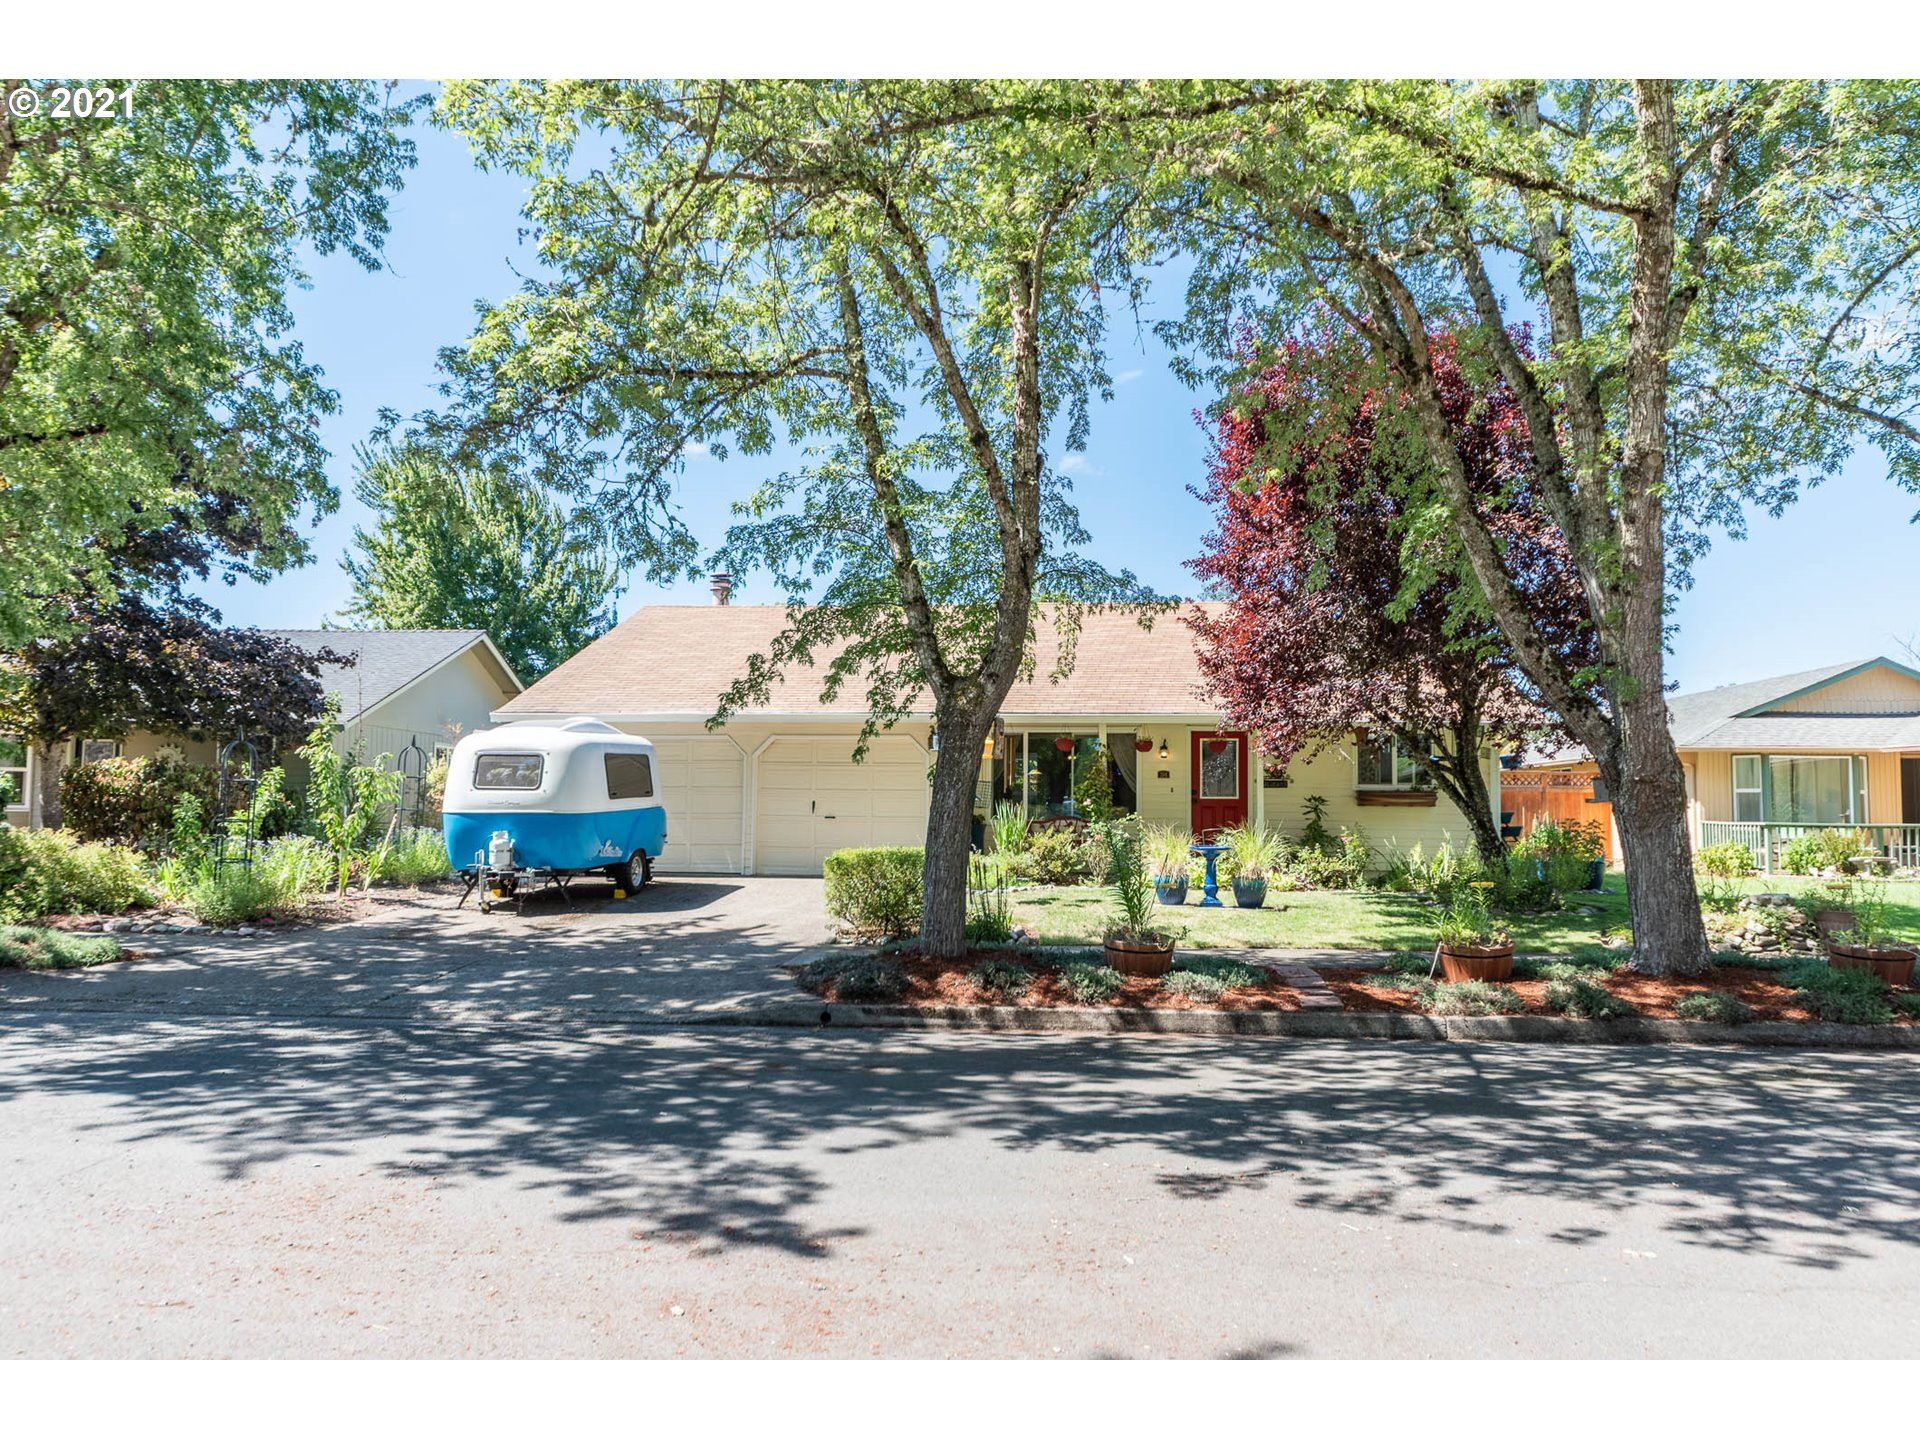 384 S 48TH ST, Springfield, OR 97478 - MLS#: 21541661